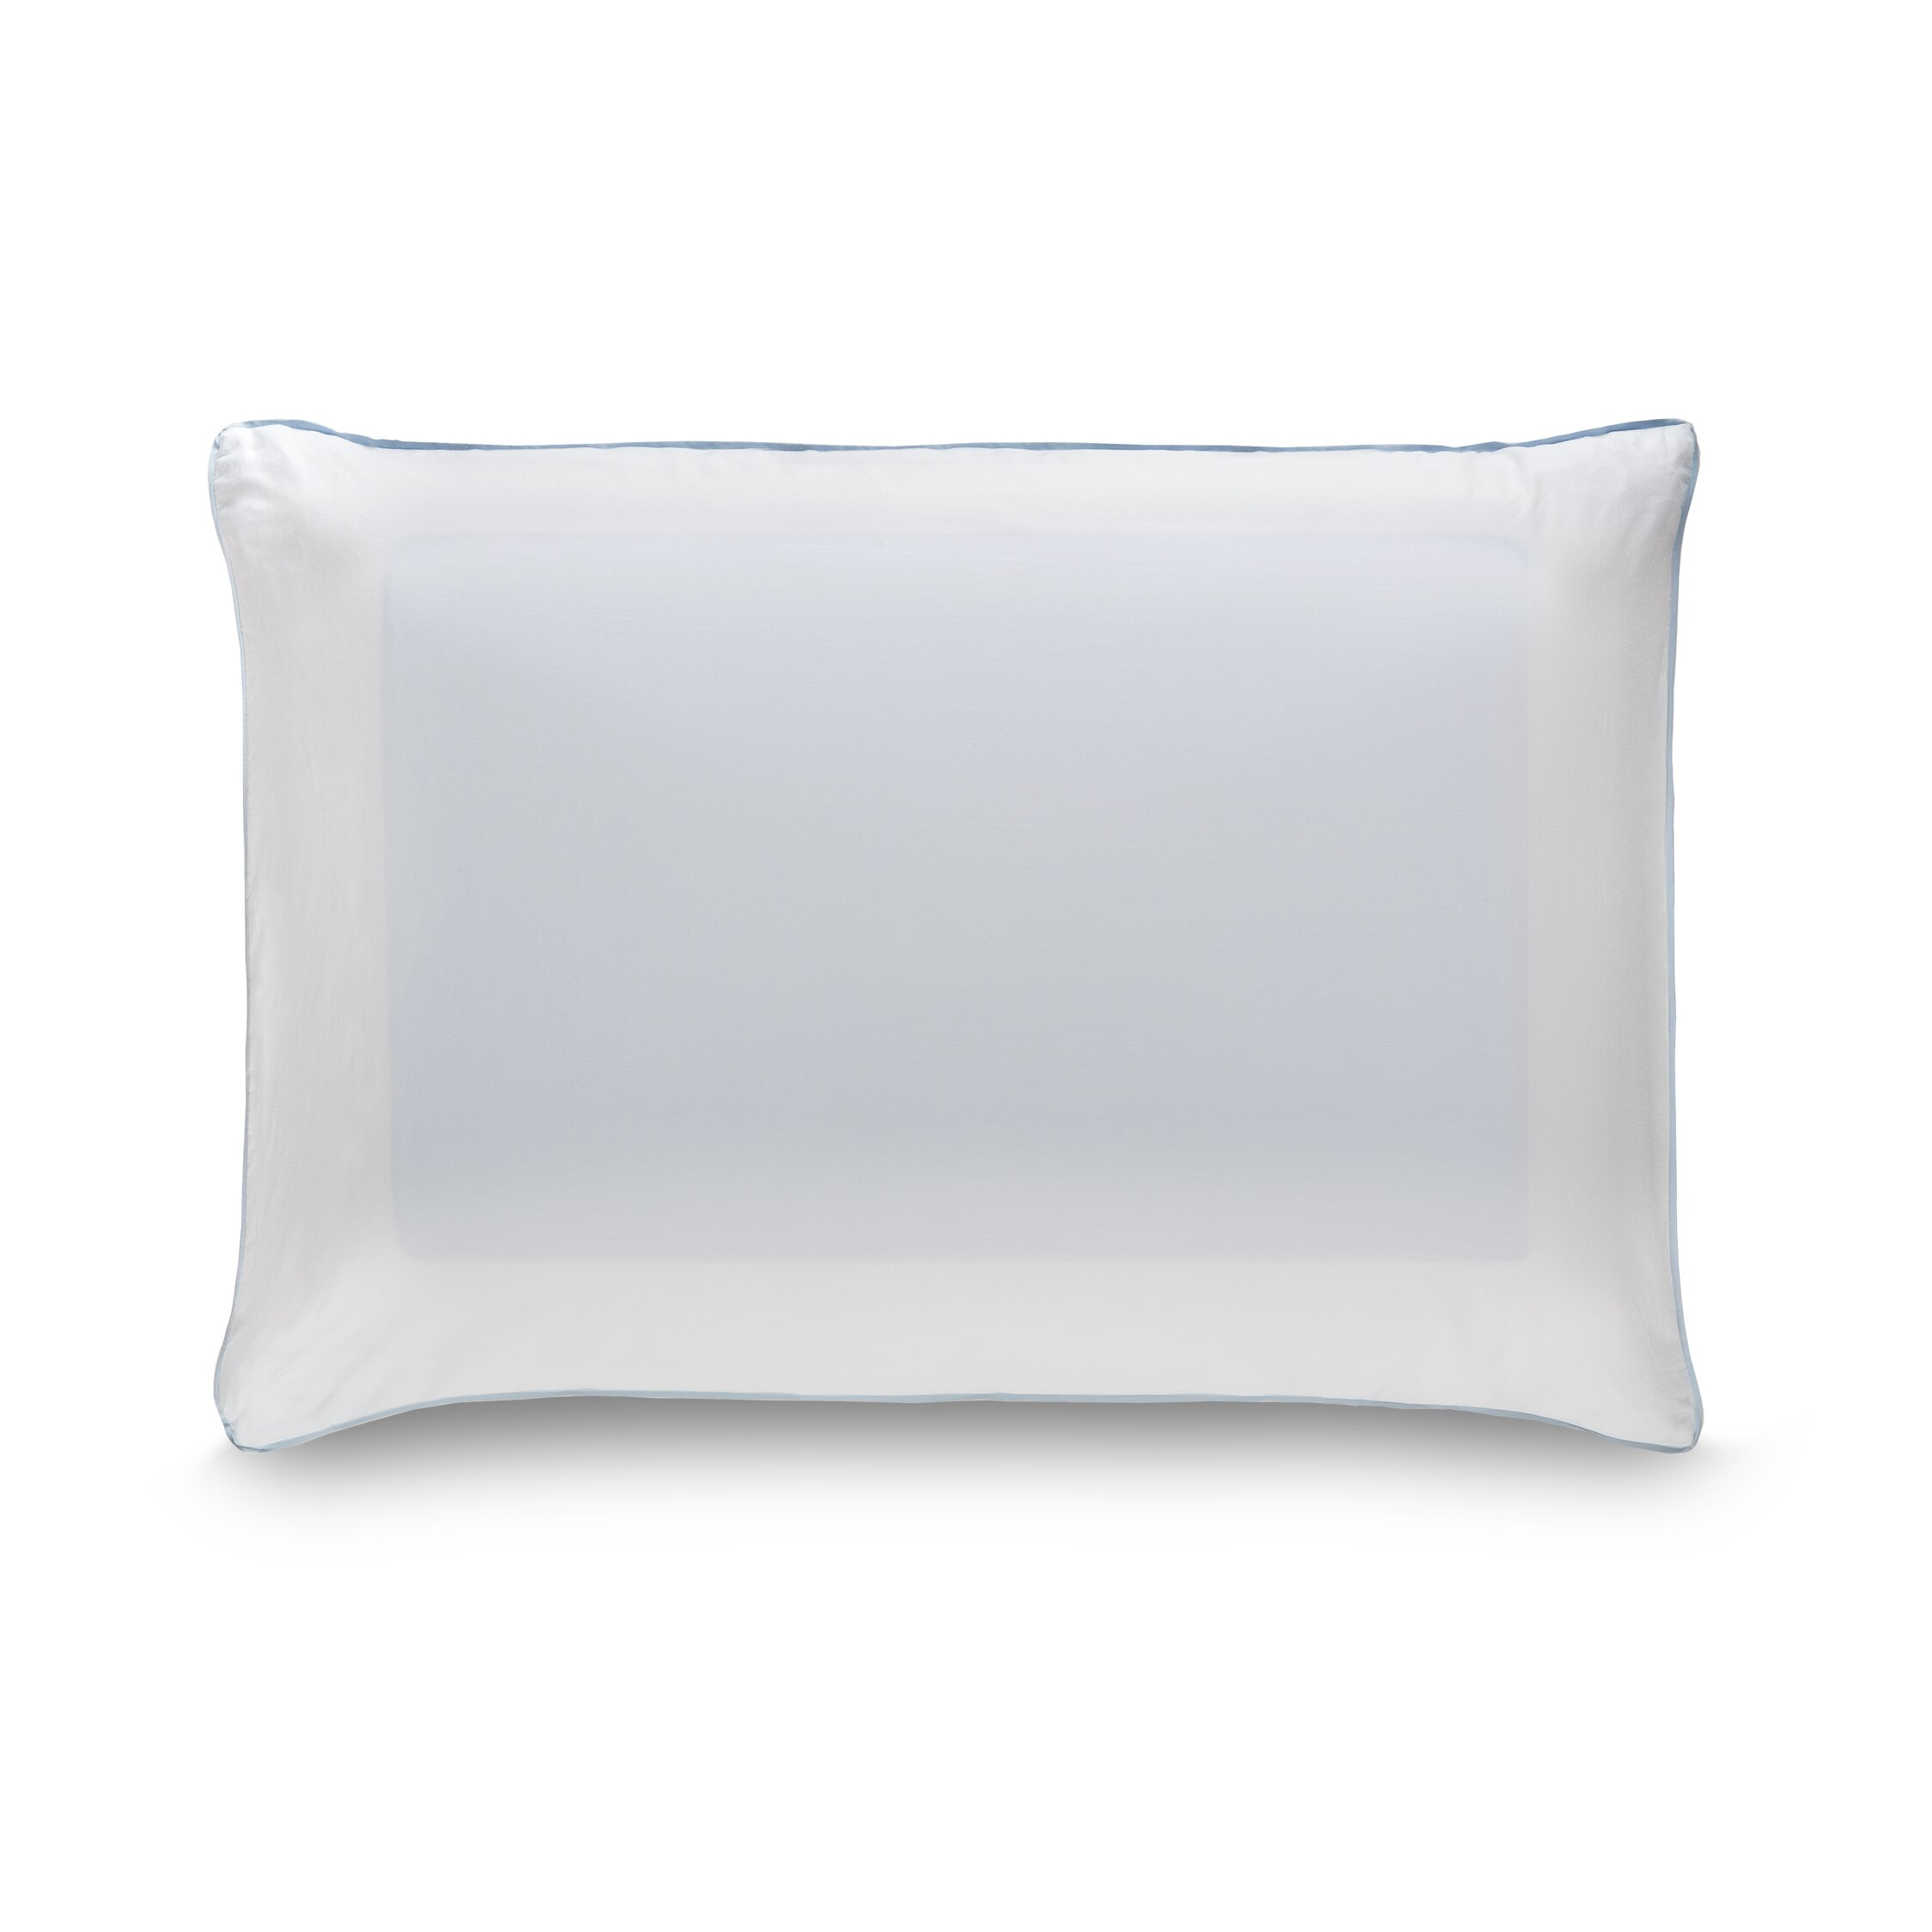 Tempur-Pedic Cloud Breeze Dual Cooling Memory Foam Pillow & Reviews Wayfair